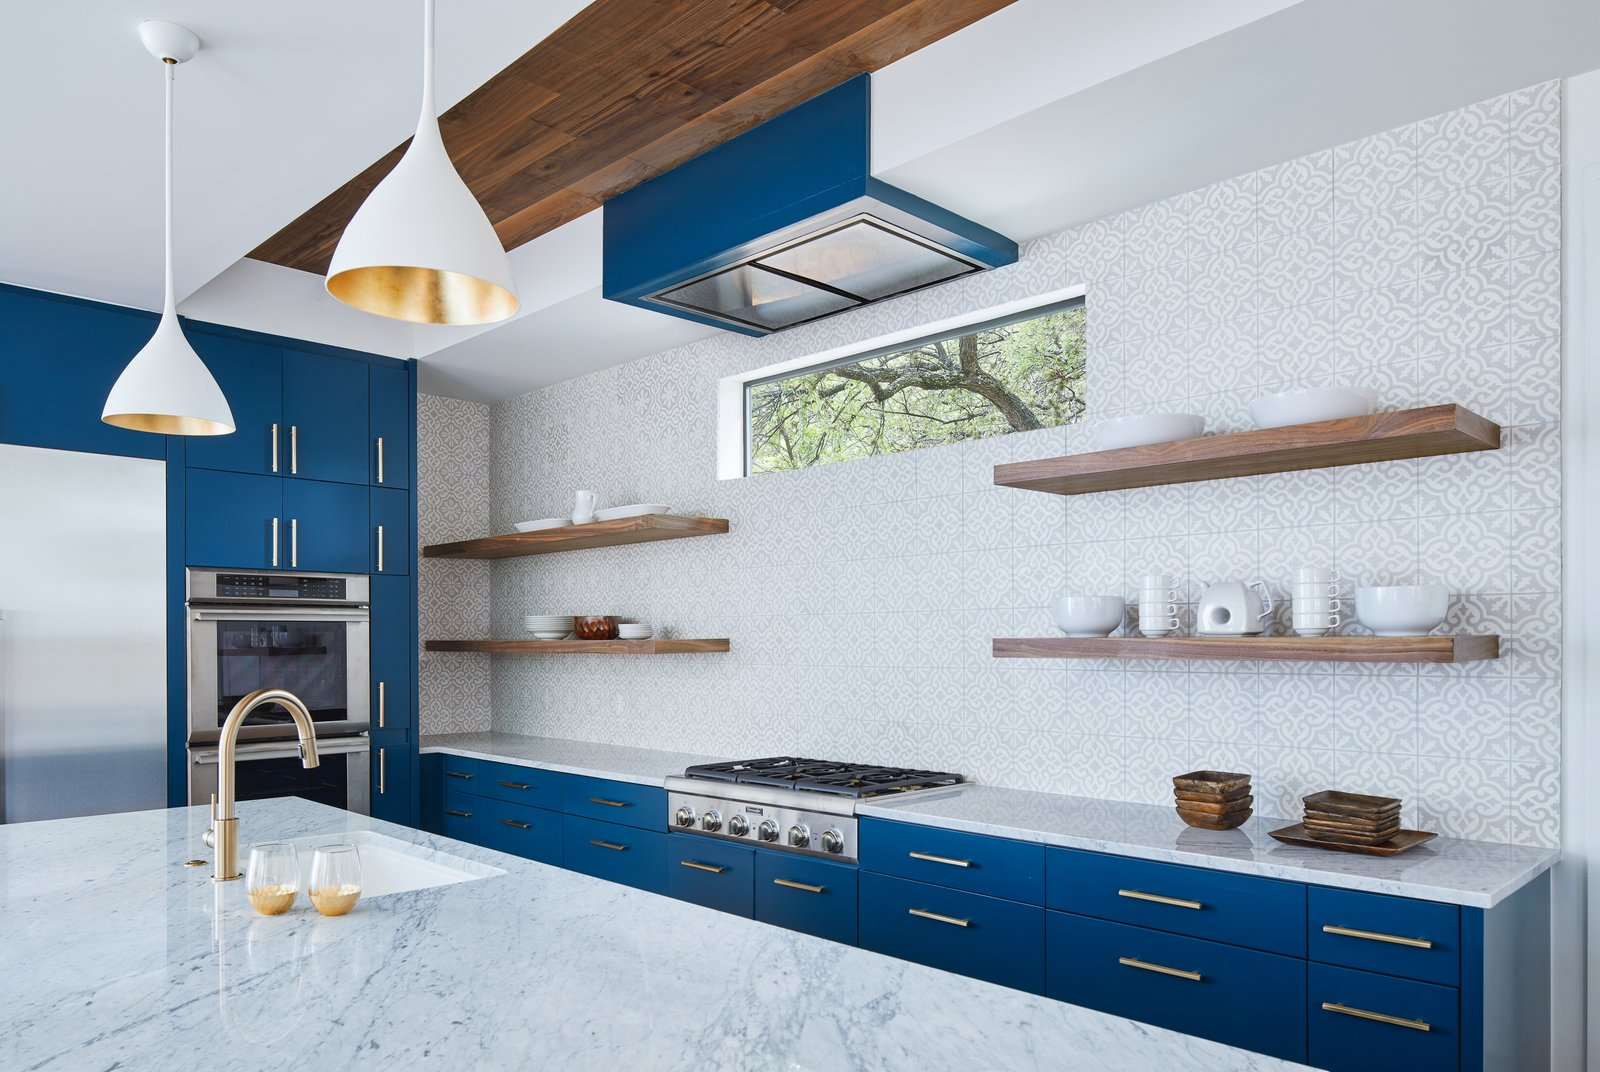 Kitchen, Refrigerator, Wine Cooler, Marble, Range Hood, Wall Oven, Colorful, Concrete, Dark Hardwood, Stone Tile, Cooktops, Pendant, Ceramic Tile, Ceiling, and Undermount Kitchen  Best Kitchen Cooktops Undermount Concrete Wall Oven Stone Tile Photos from Chelsea House